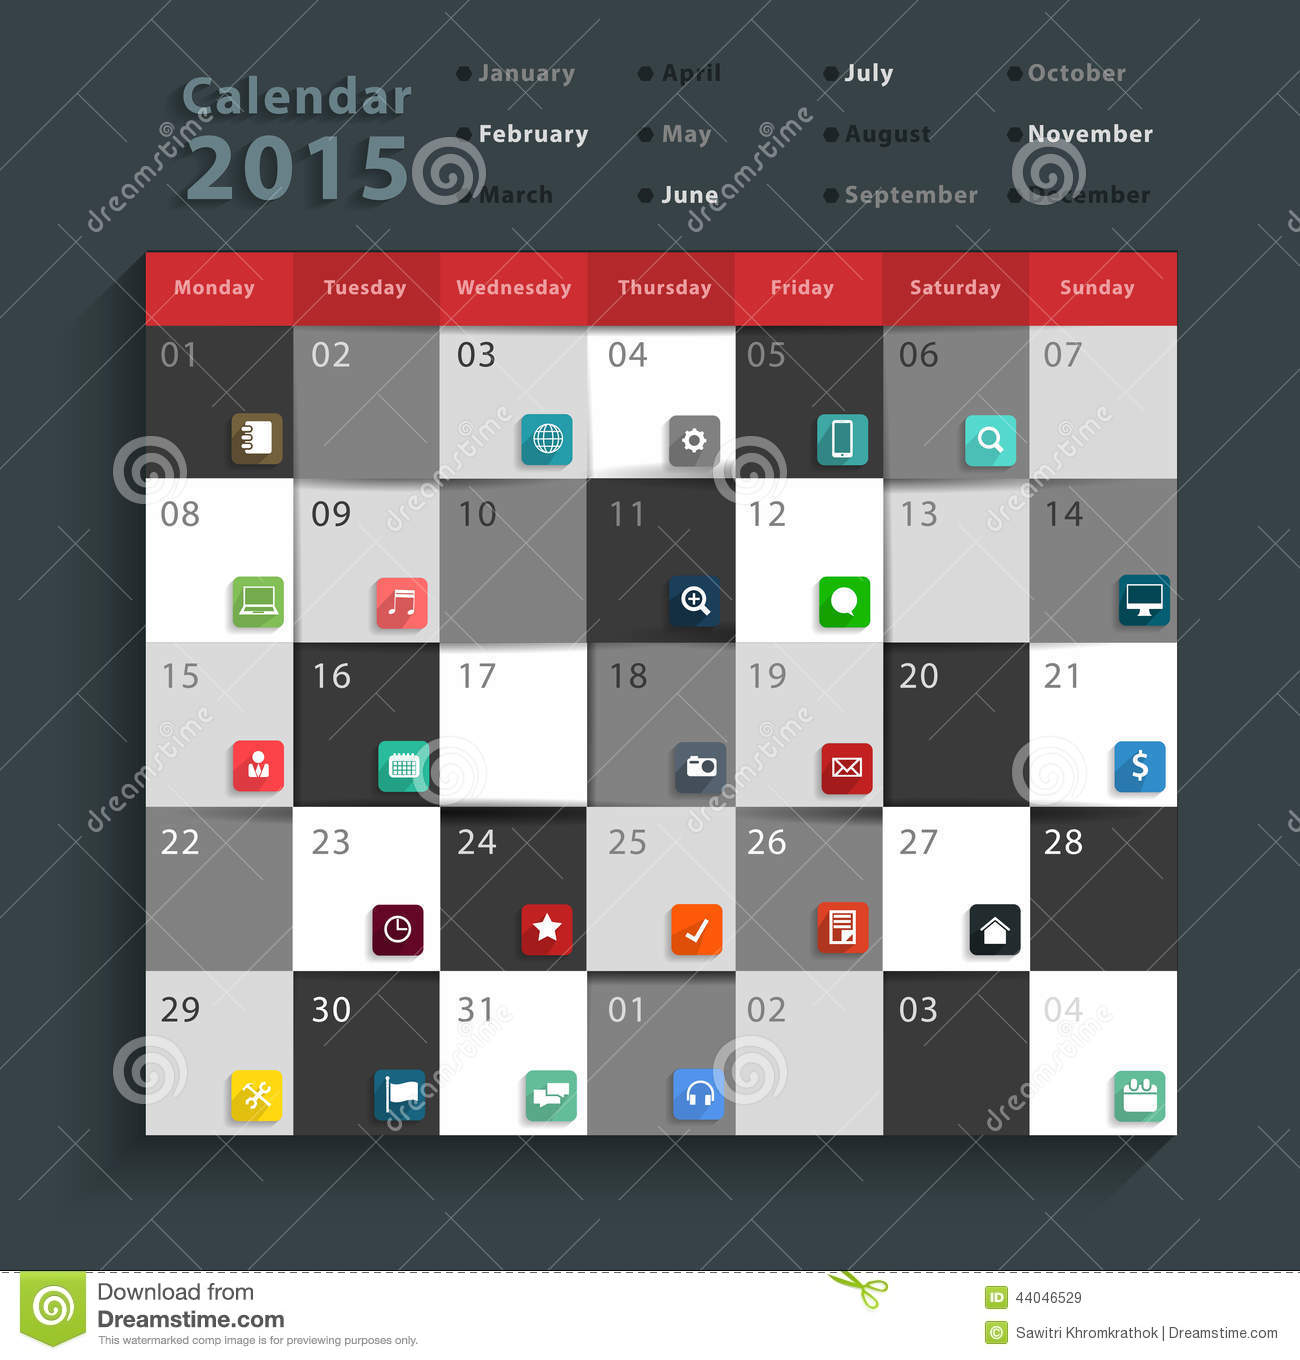 Calendar Design Free Vector : Vector calendar modern business flat icons set stock